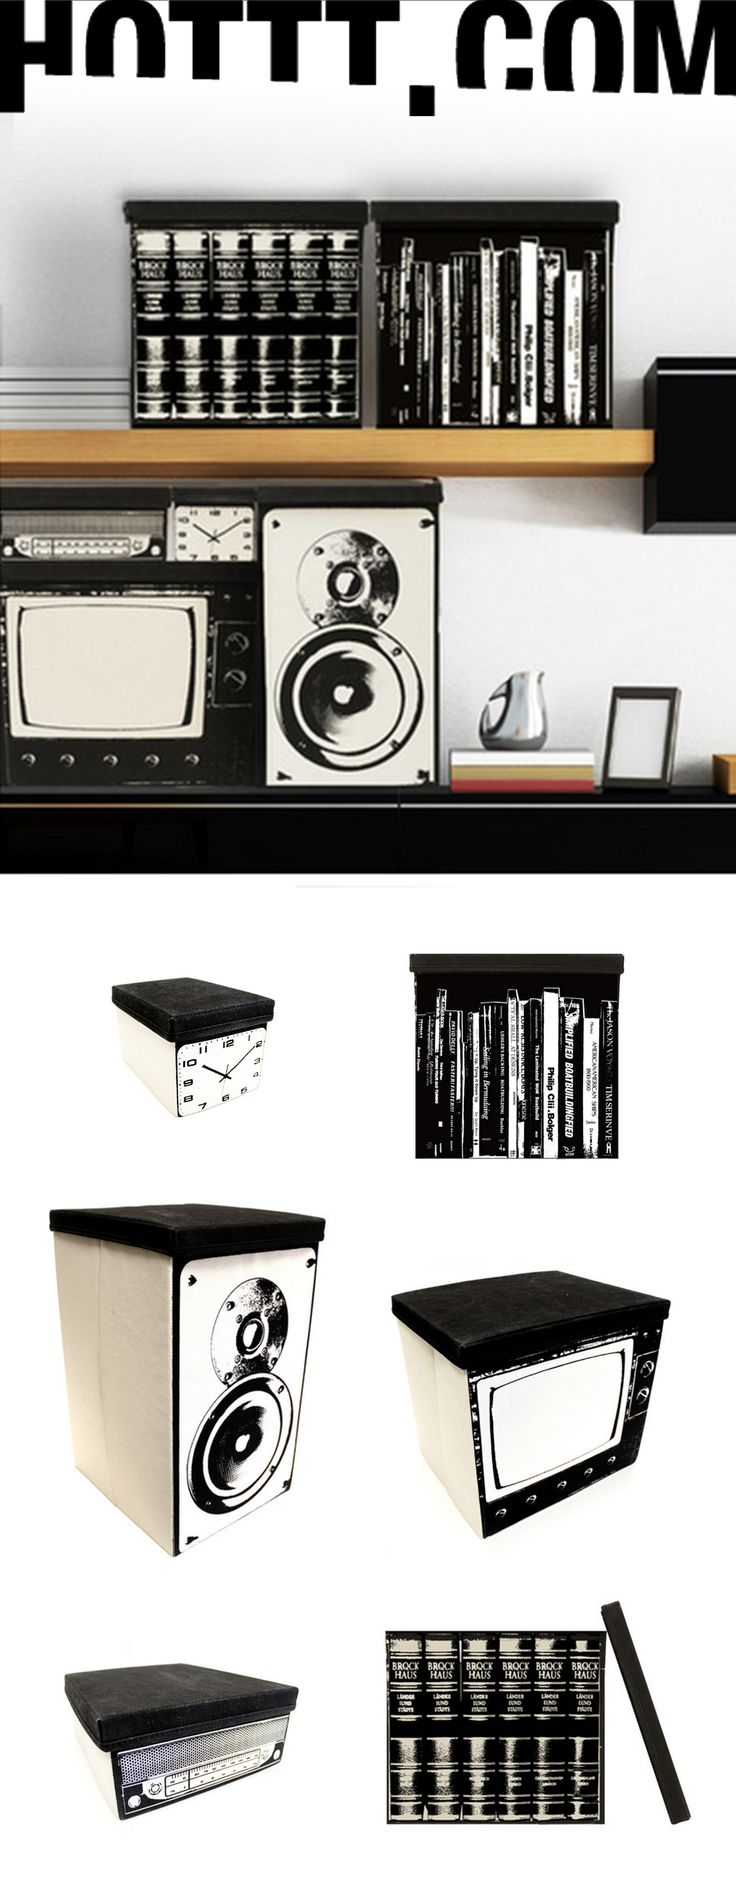 Media Canvas Boxes @ HOTTT.COM! Clock, Books, TV, Stereo, and Speakers